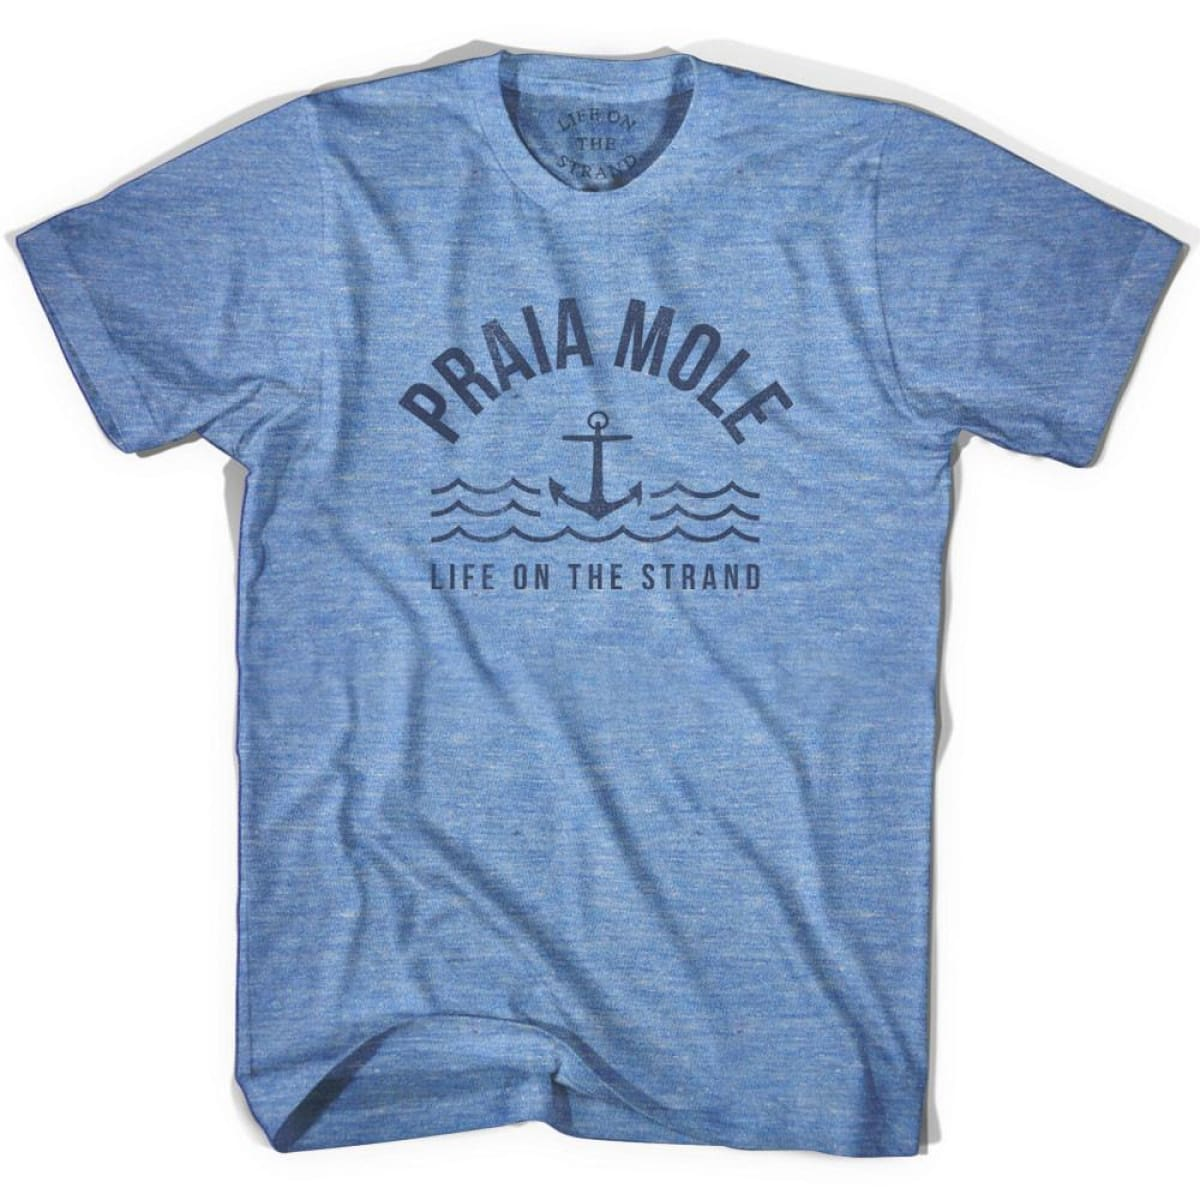 Praia Anchor Life on the Strand T-shirt - Athletic Blue / Adult X-Small - Life on the Strand Anchor